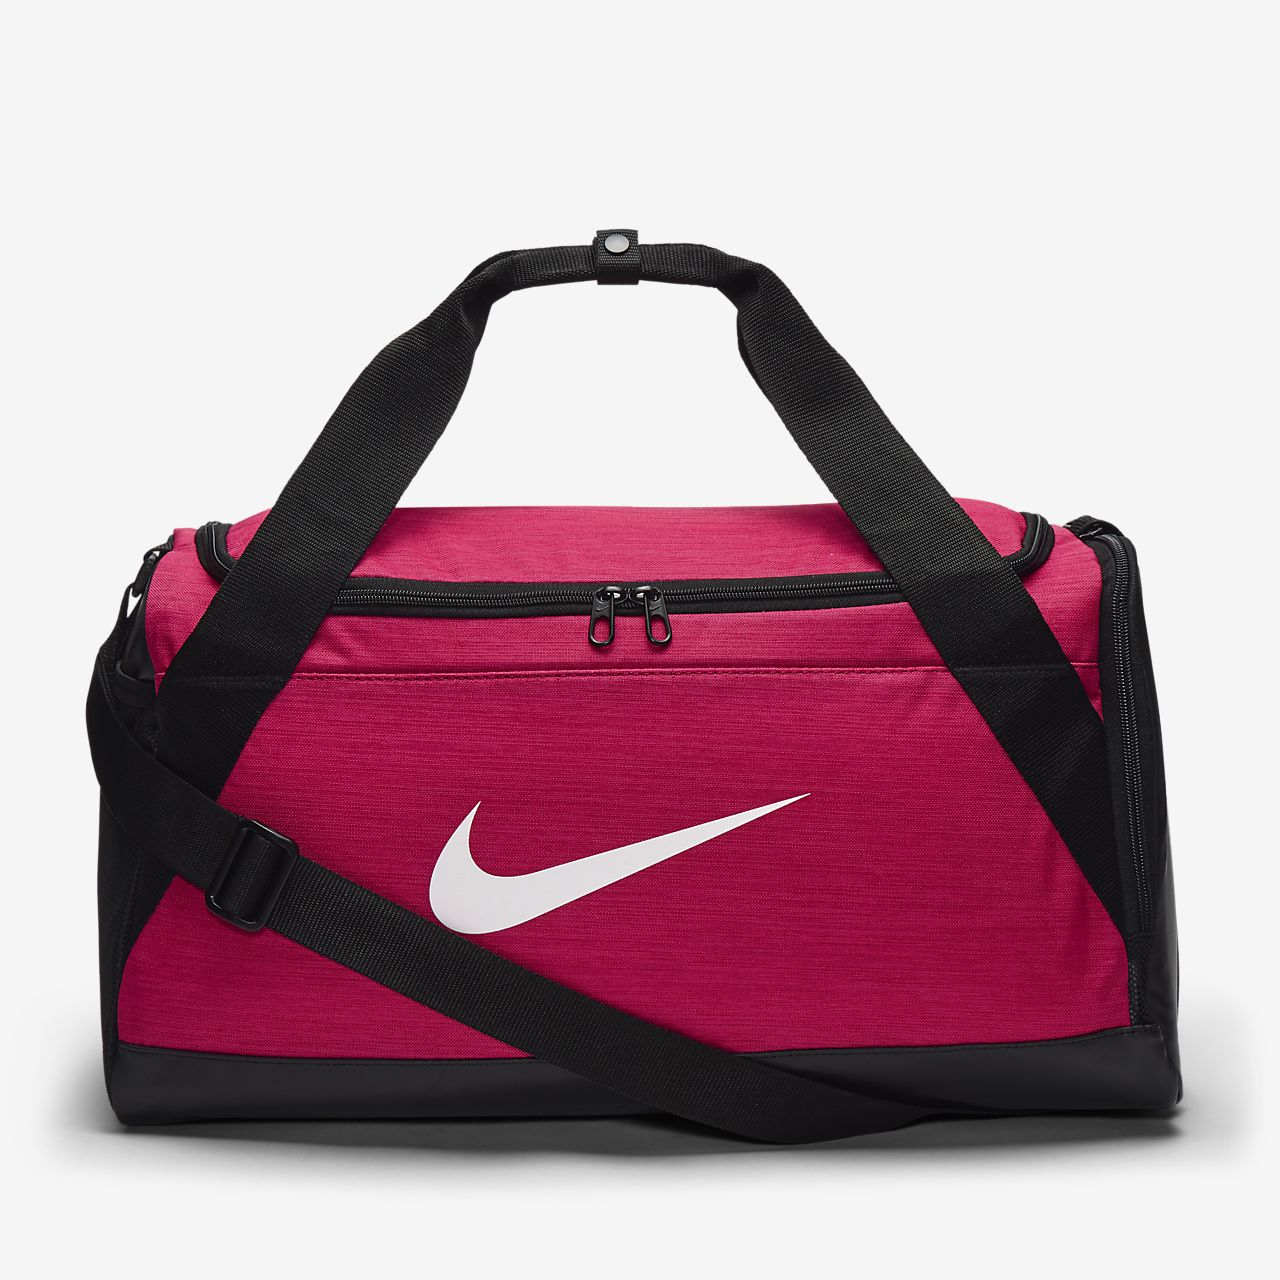 046a28ea5233 Nike Brasilia (Small) Training Duffel Bag. Nike.com SI